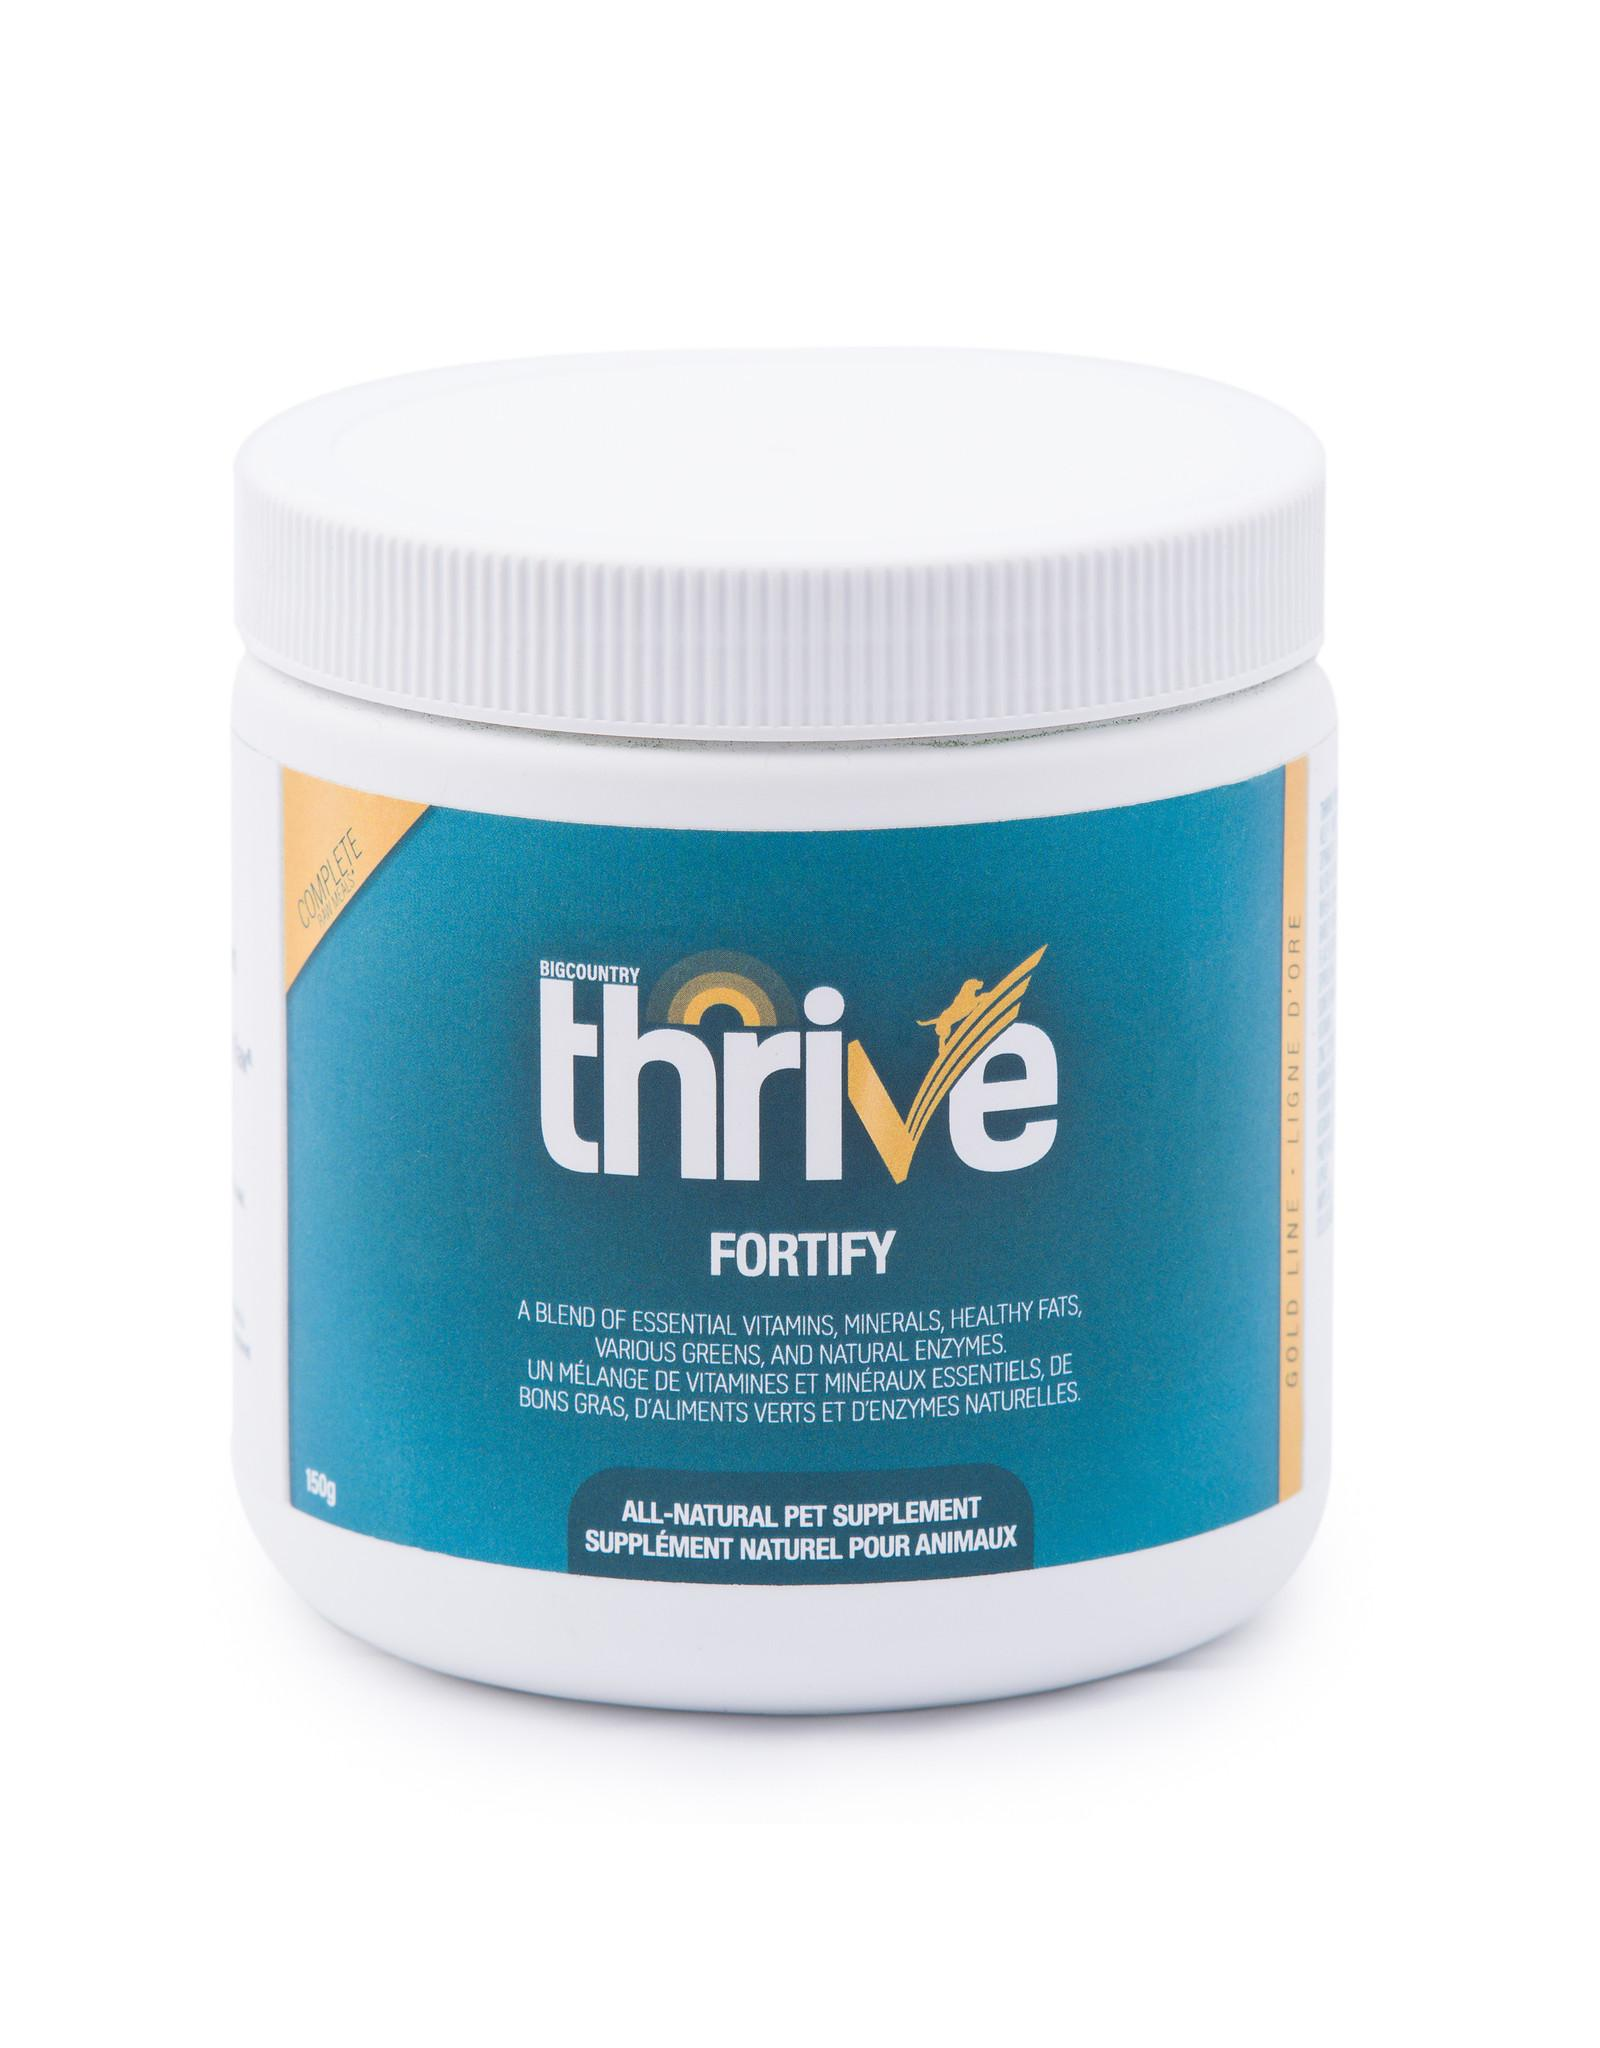 Thrive Gold Line Fortify Dog & Cat Supplement, 150-gram